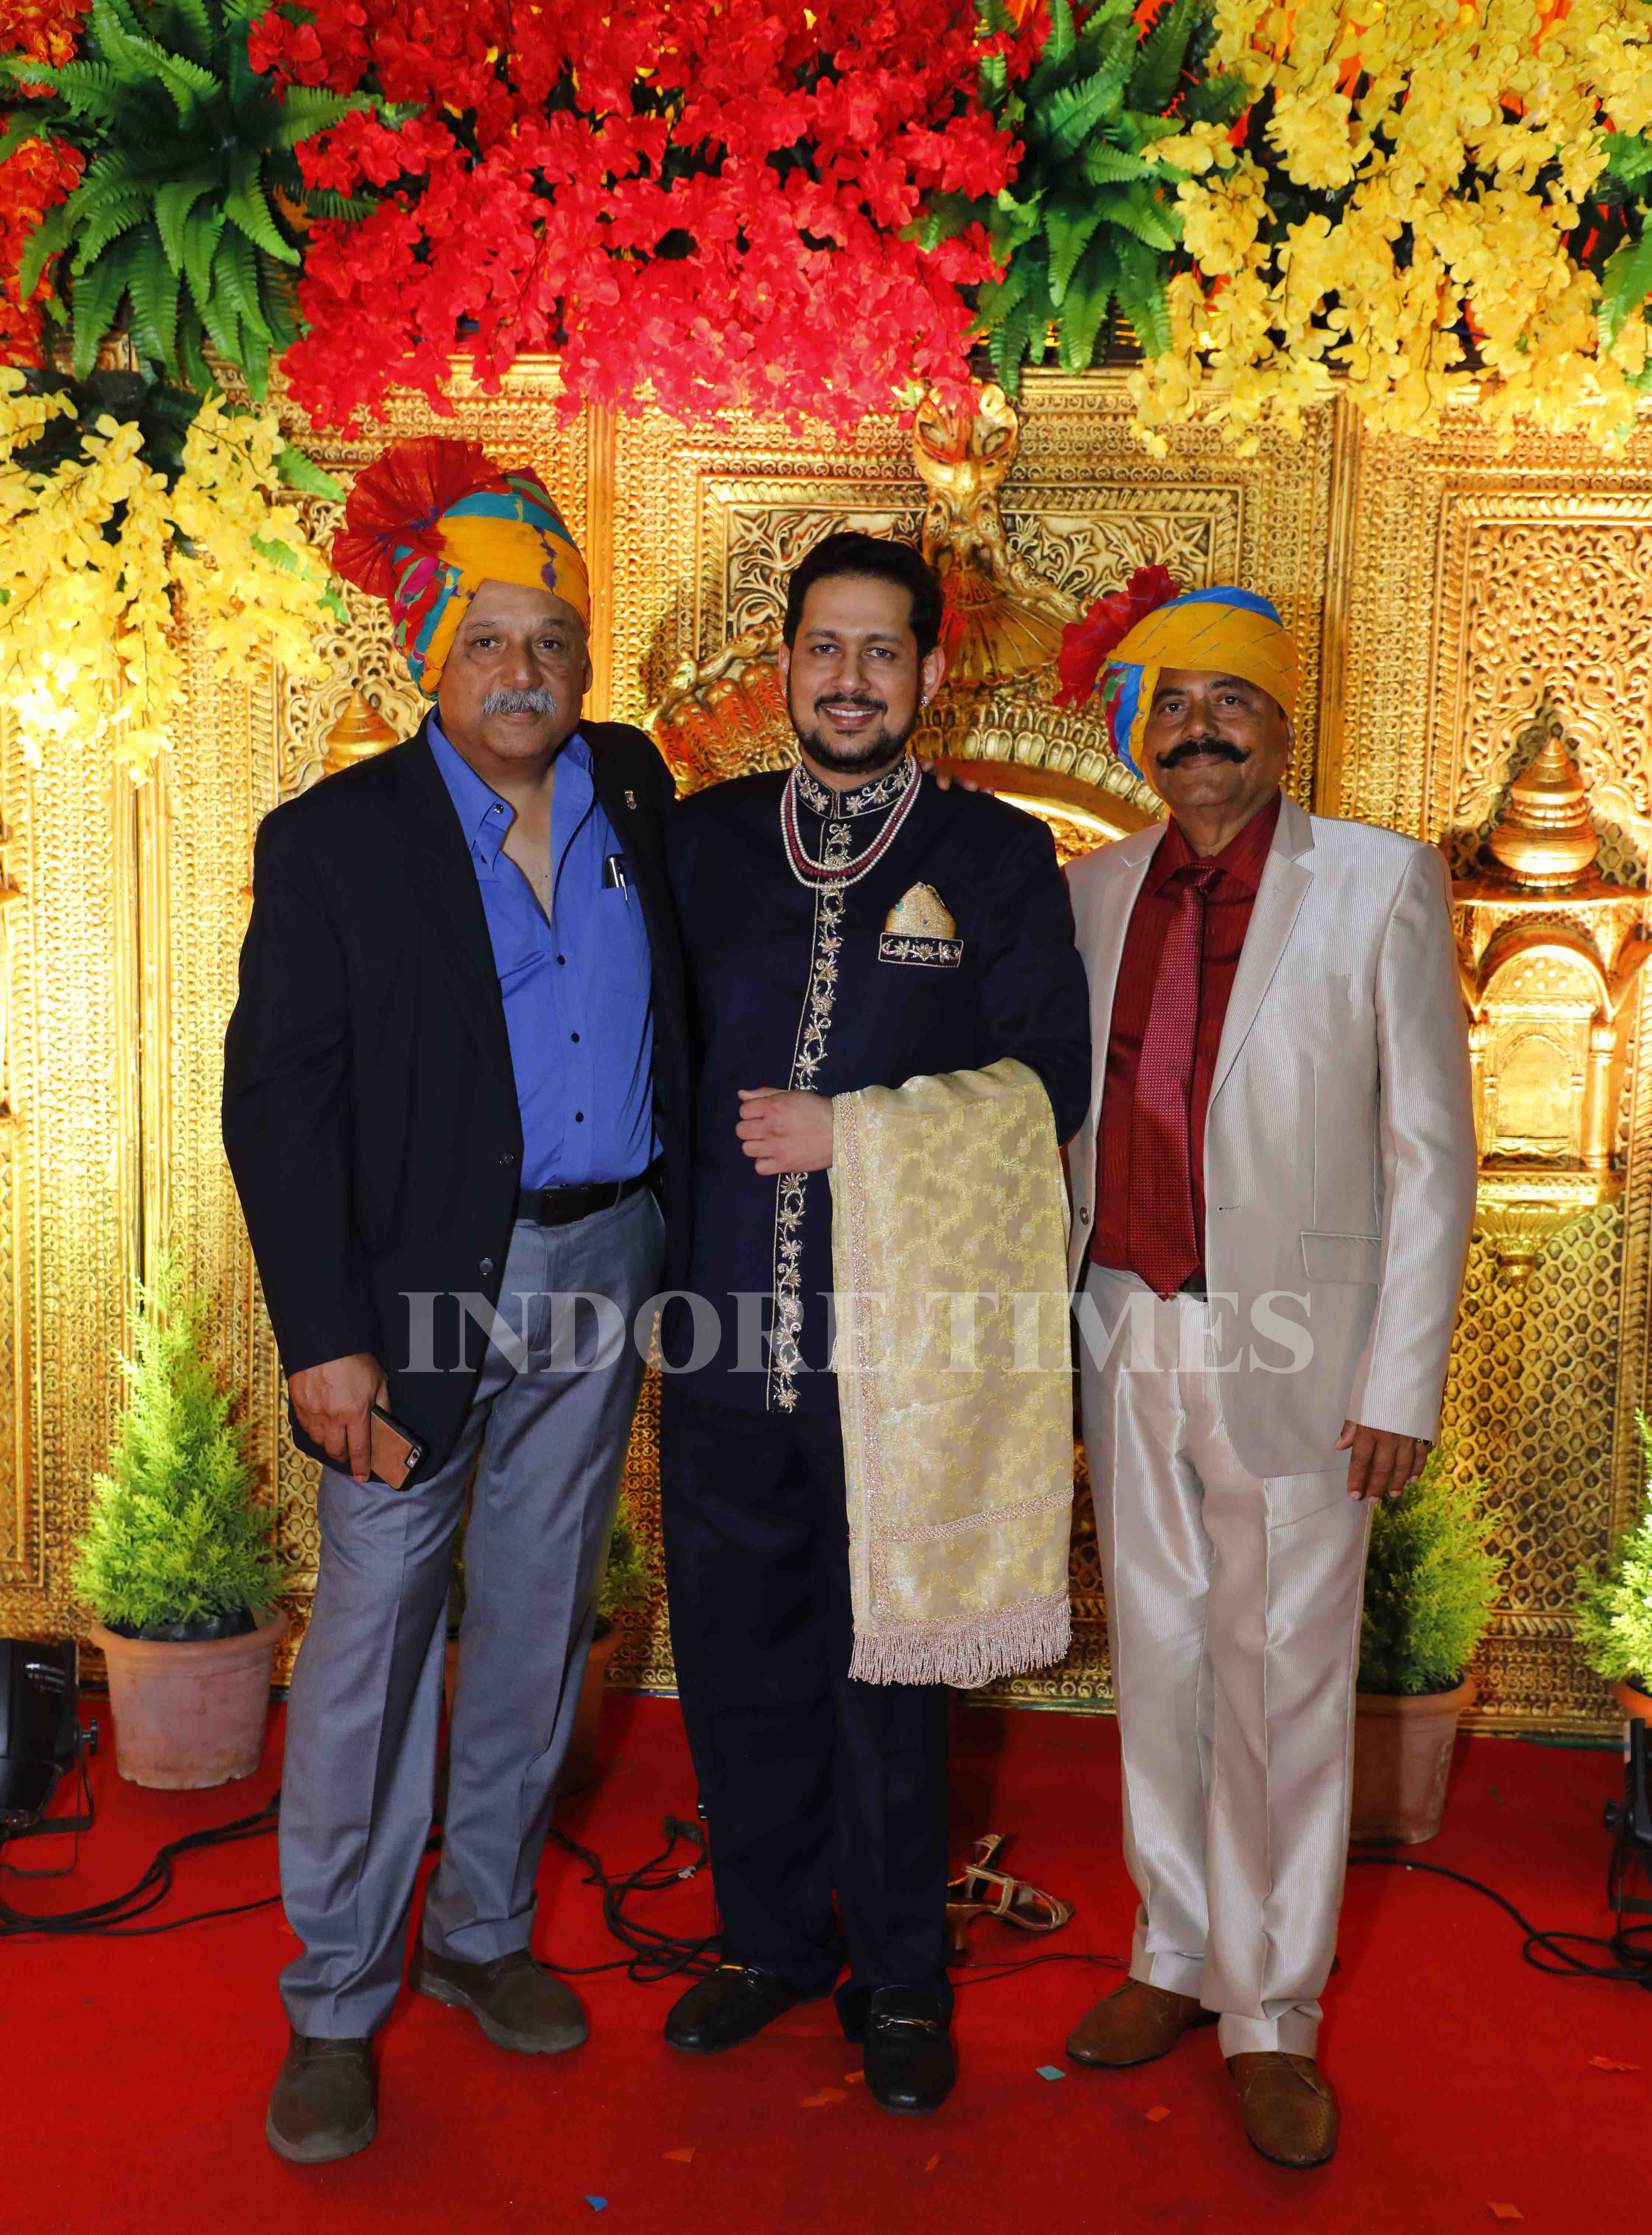 Rohit Raje Pawar, Maharaja of Surgana in the middle with visitors_edit